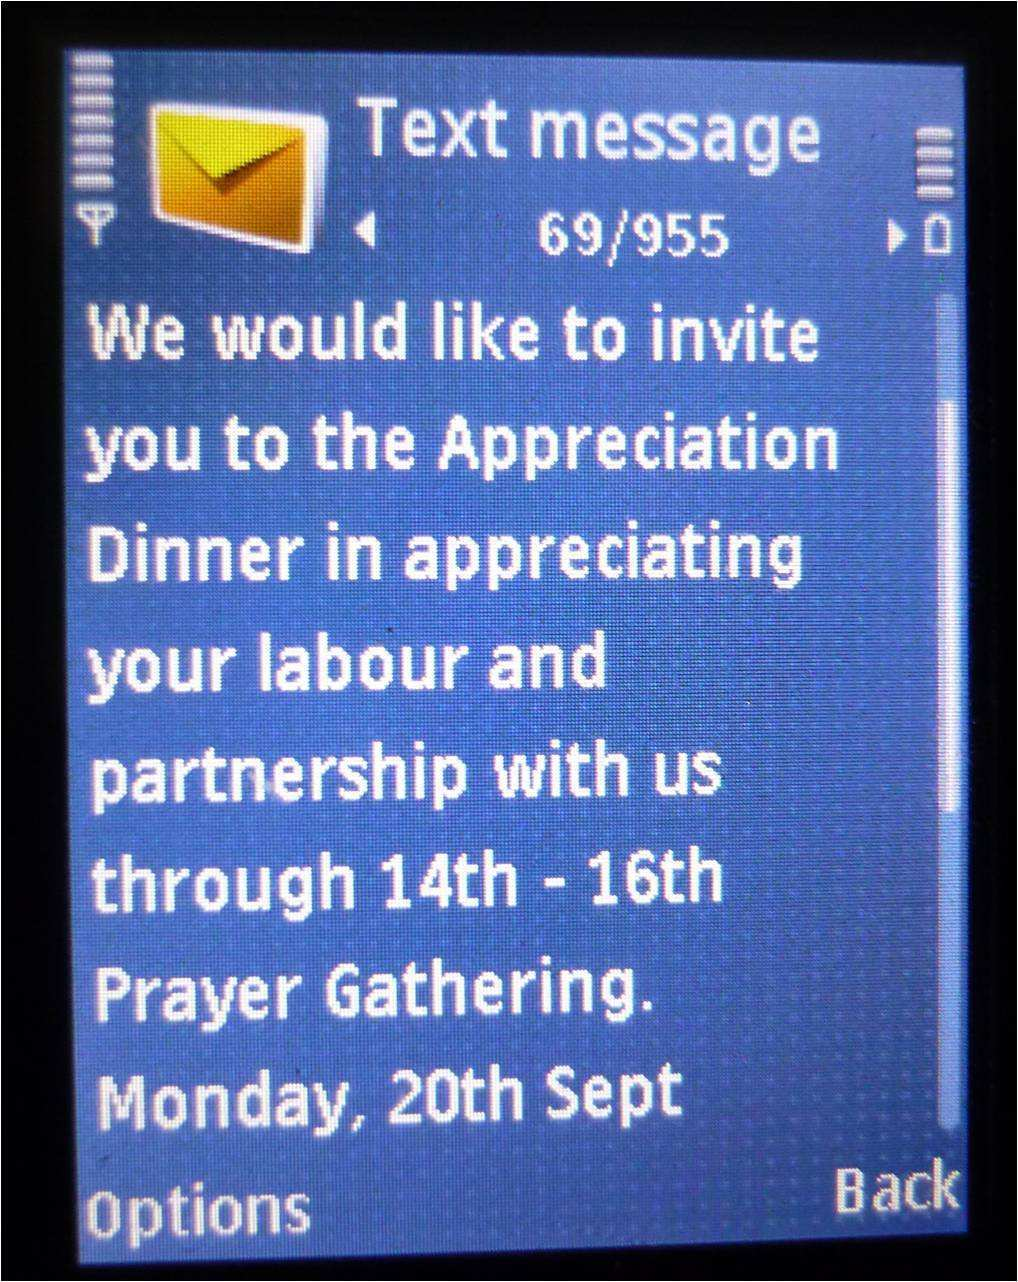 5 Online Dinner Invitation Sms Text Now by Dinner Invitation Sms